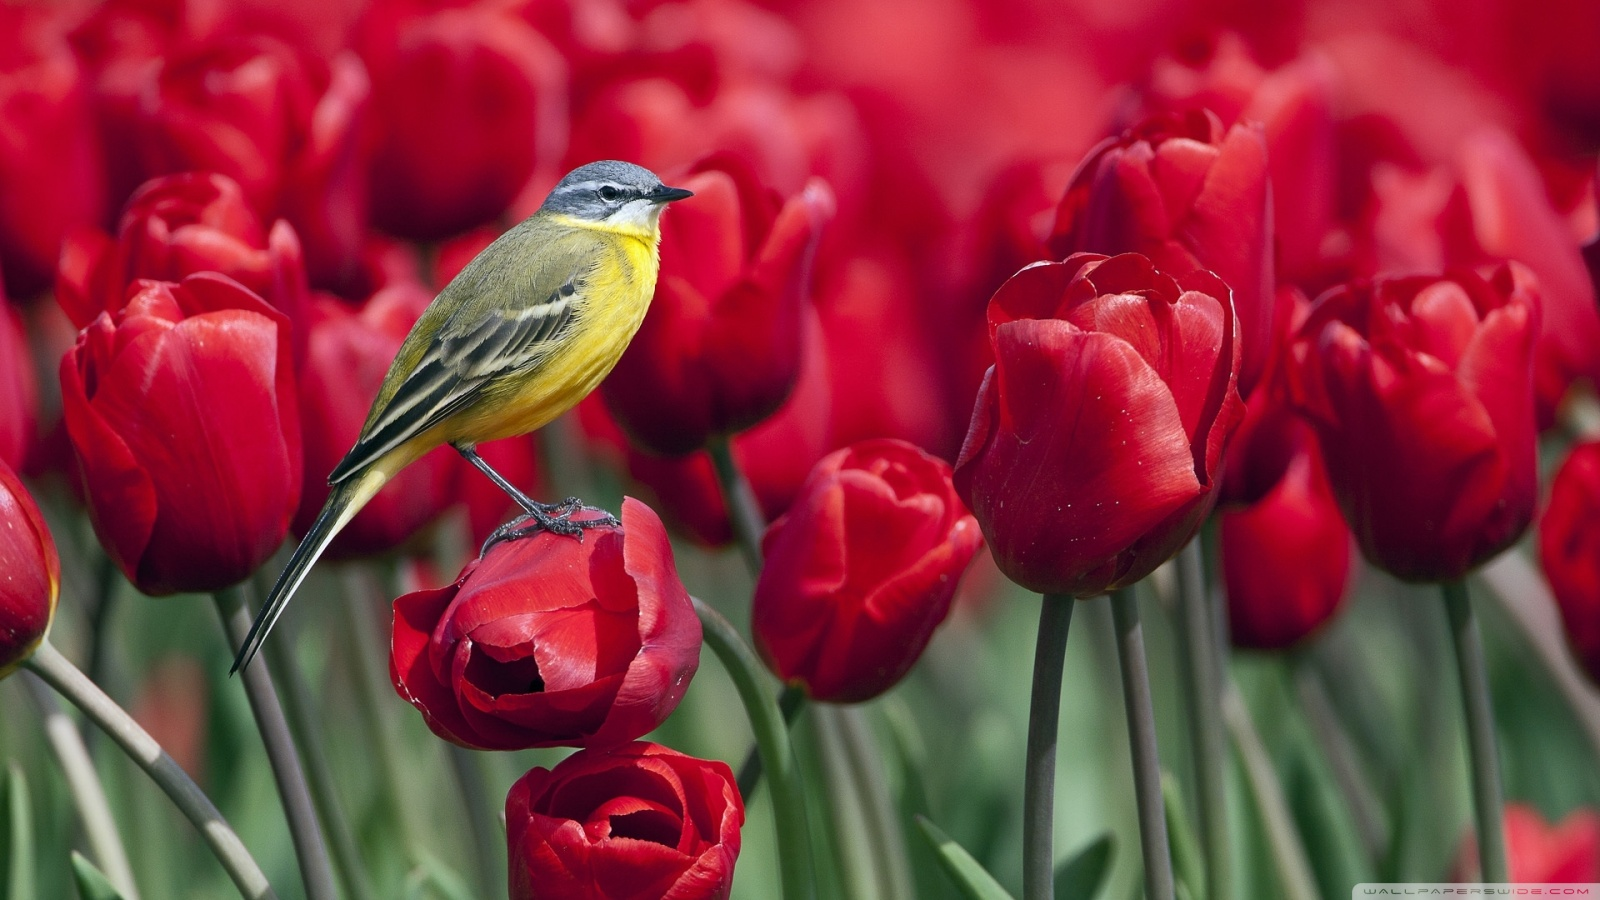 Birds and red tulips 49359